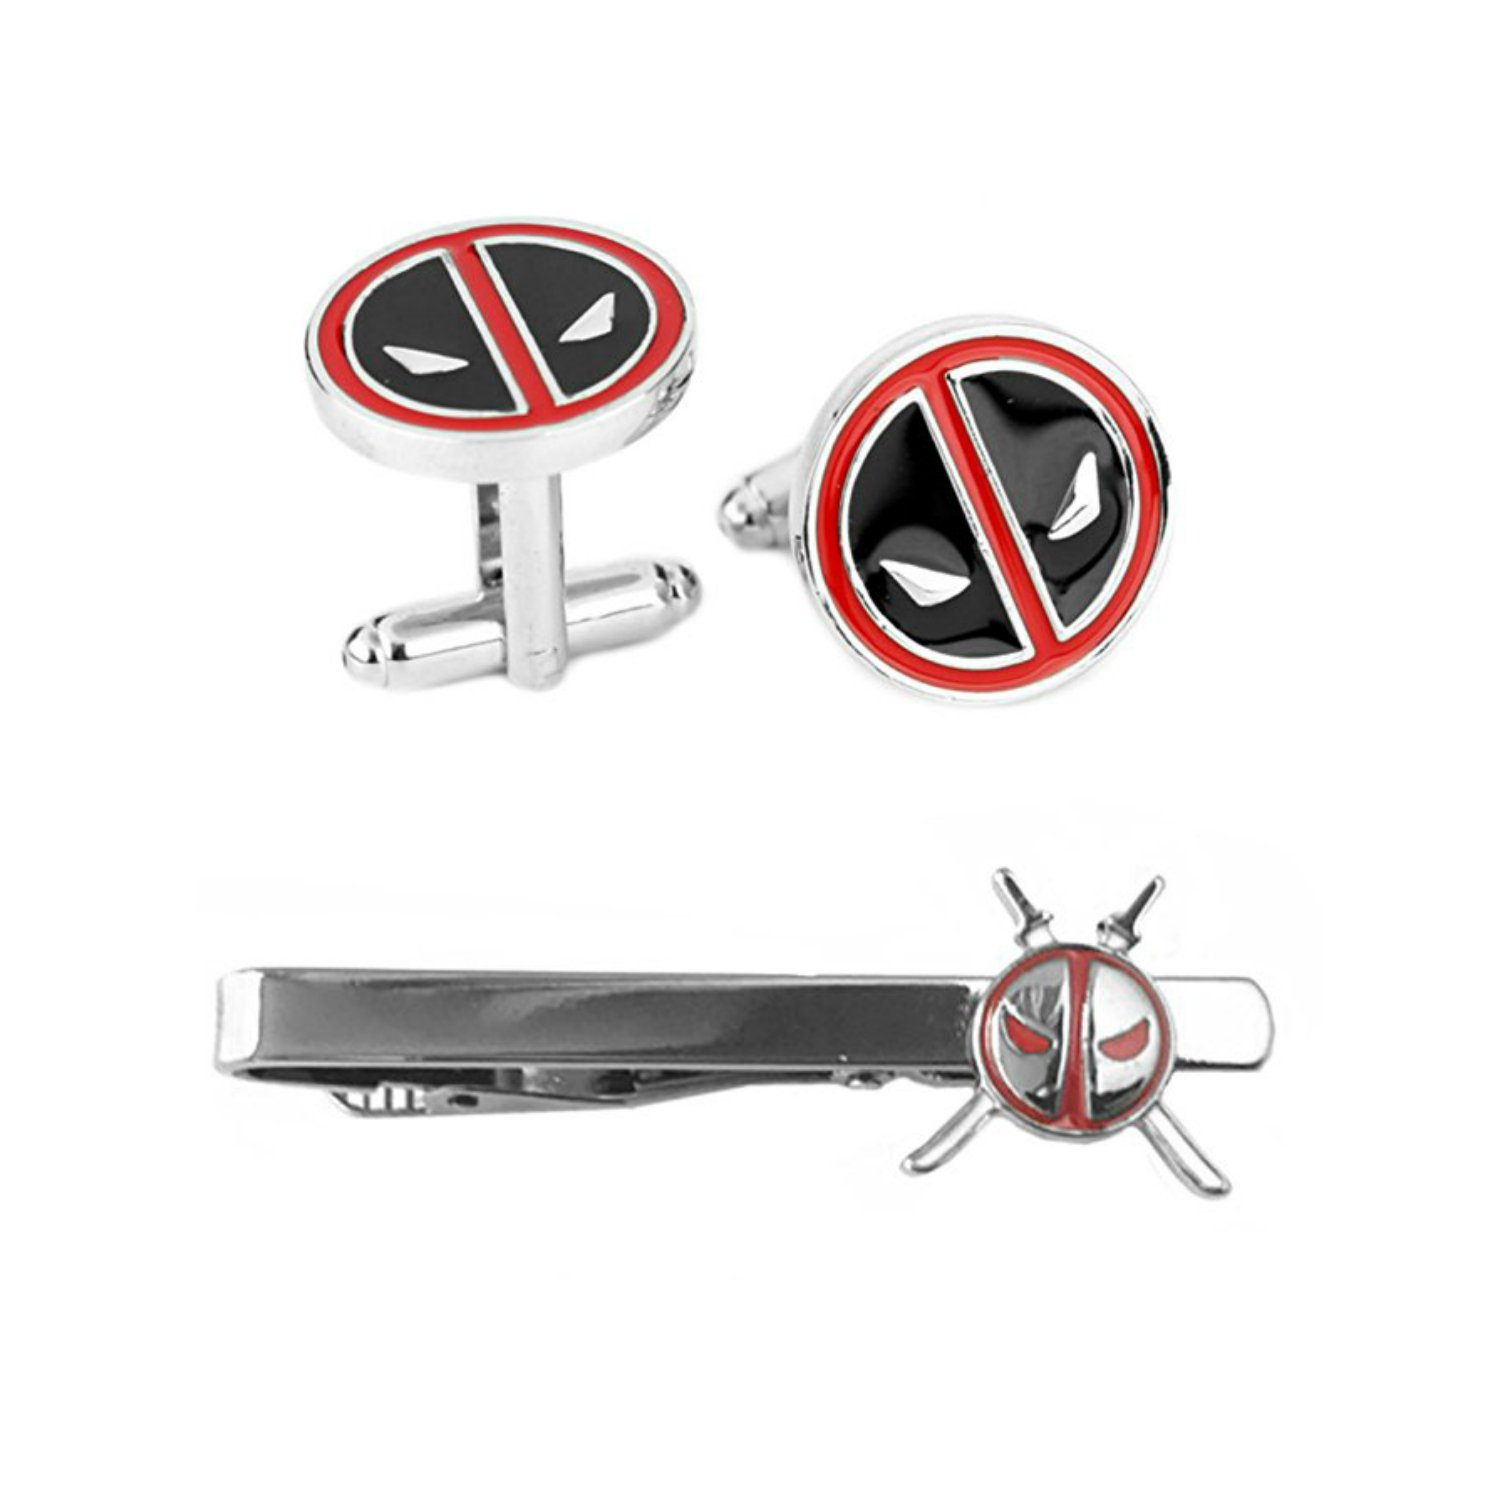 Outlander Deadpool Cufflink & Deadpool Katanas Tiebar - New 2018 Marvel Studios Superhero Movies - Set of 2 Wedding Logo w/Gift Box Outlander Brand